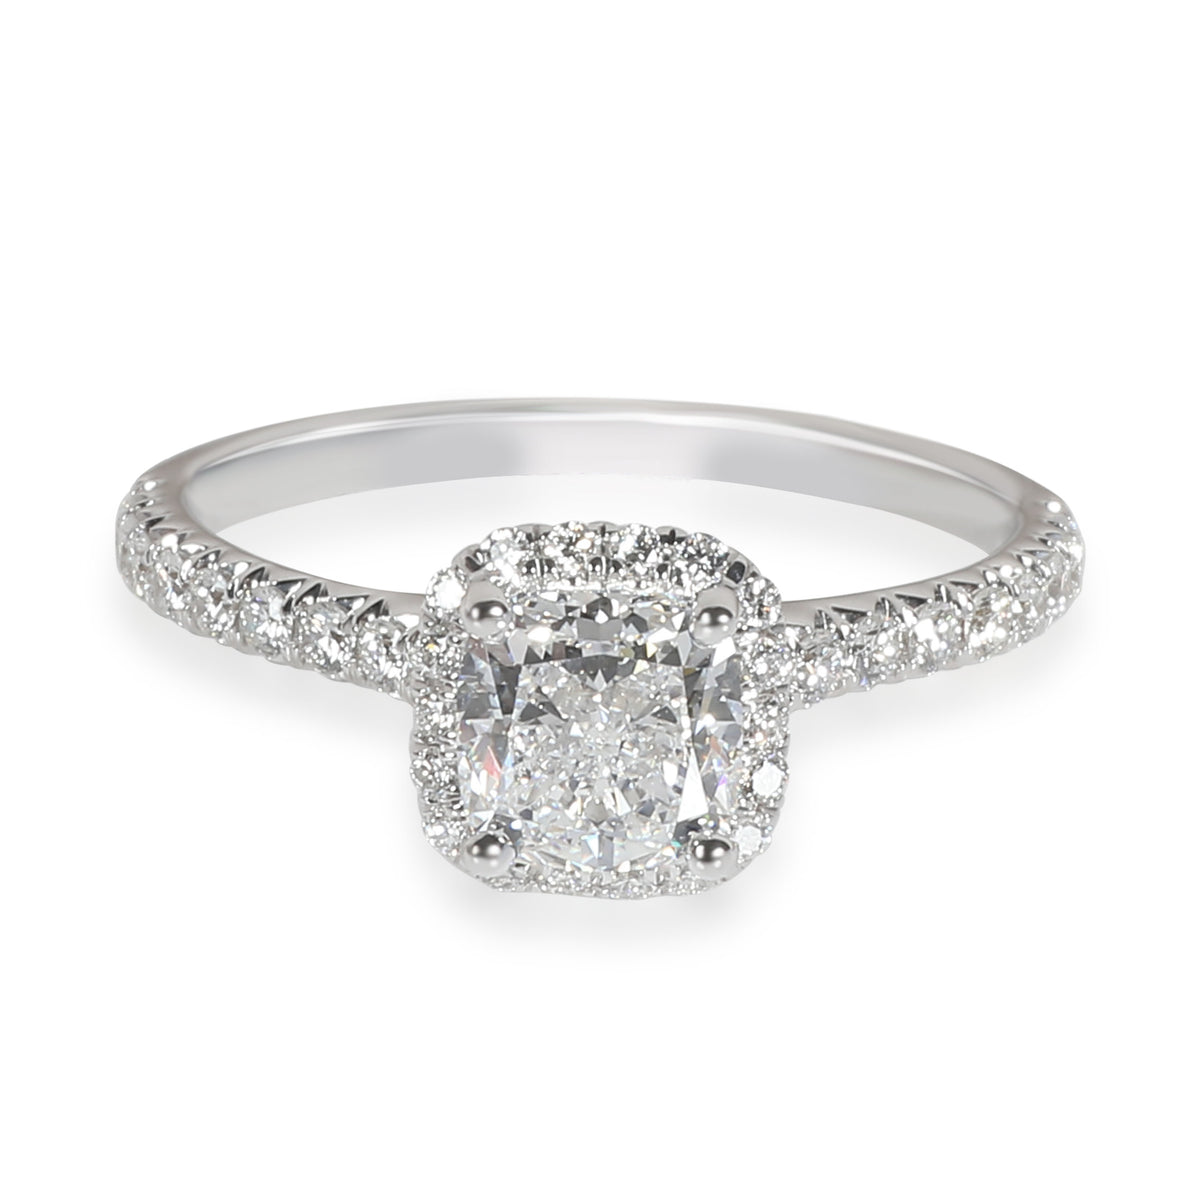 James Allen Halo Diamond Engagement Ring in 14K White Gold GIA F IF 1.23 CTW